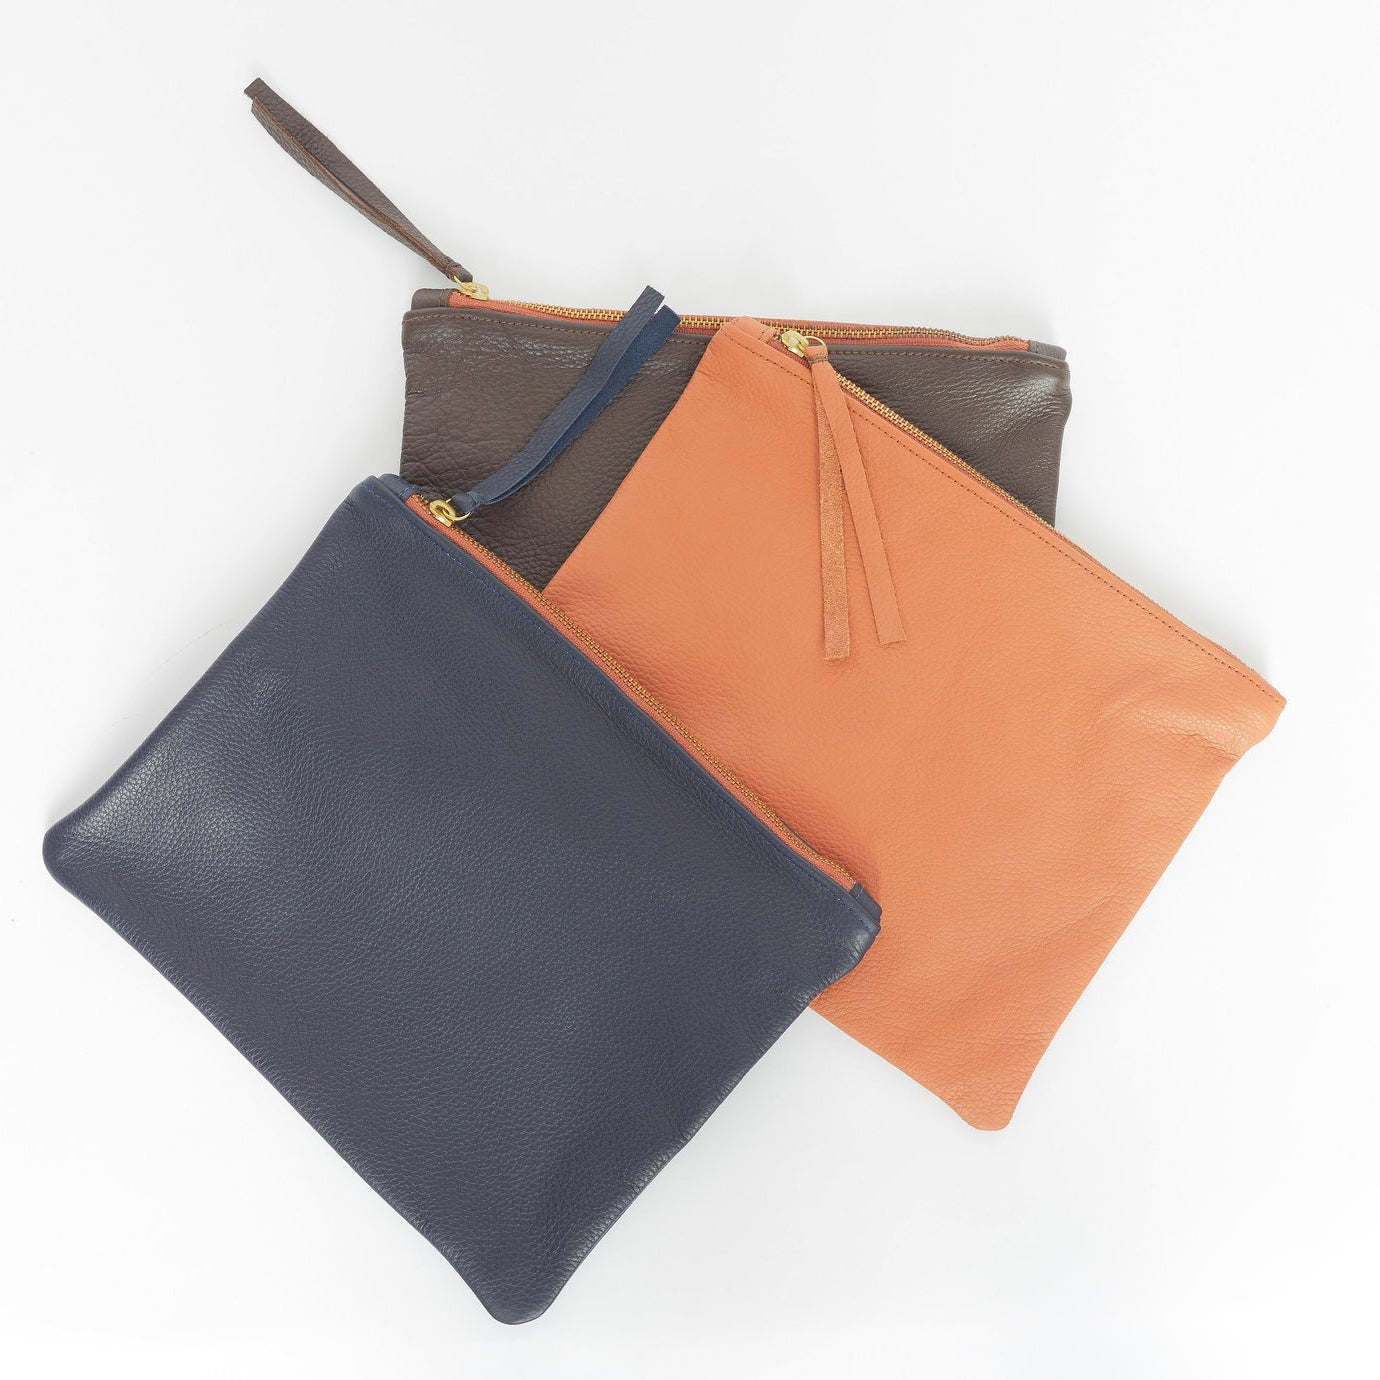 small leather pouches in tan, brown, and black